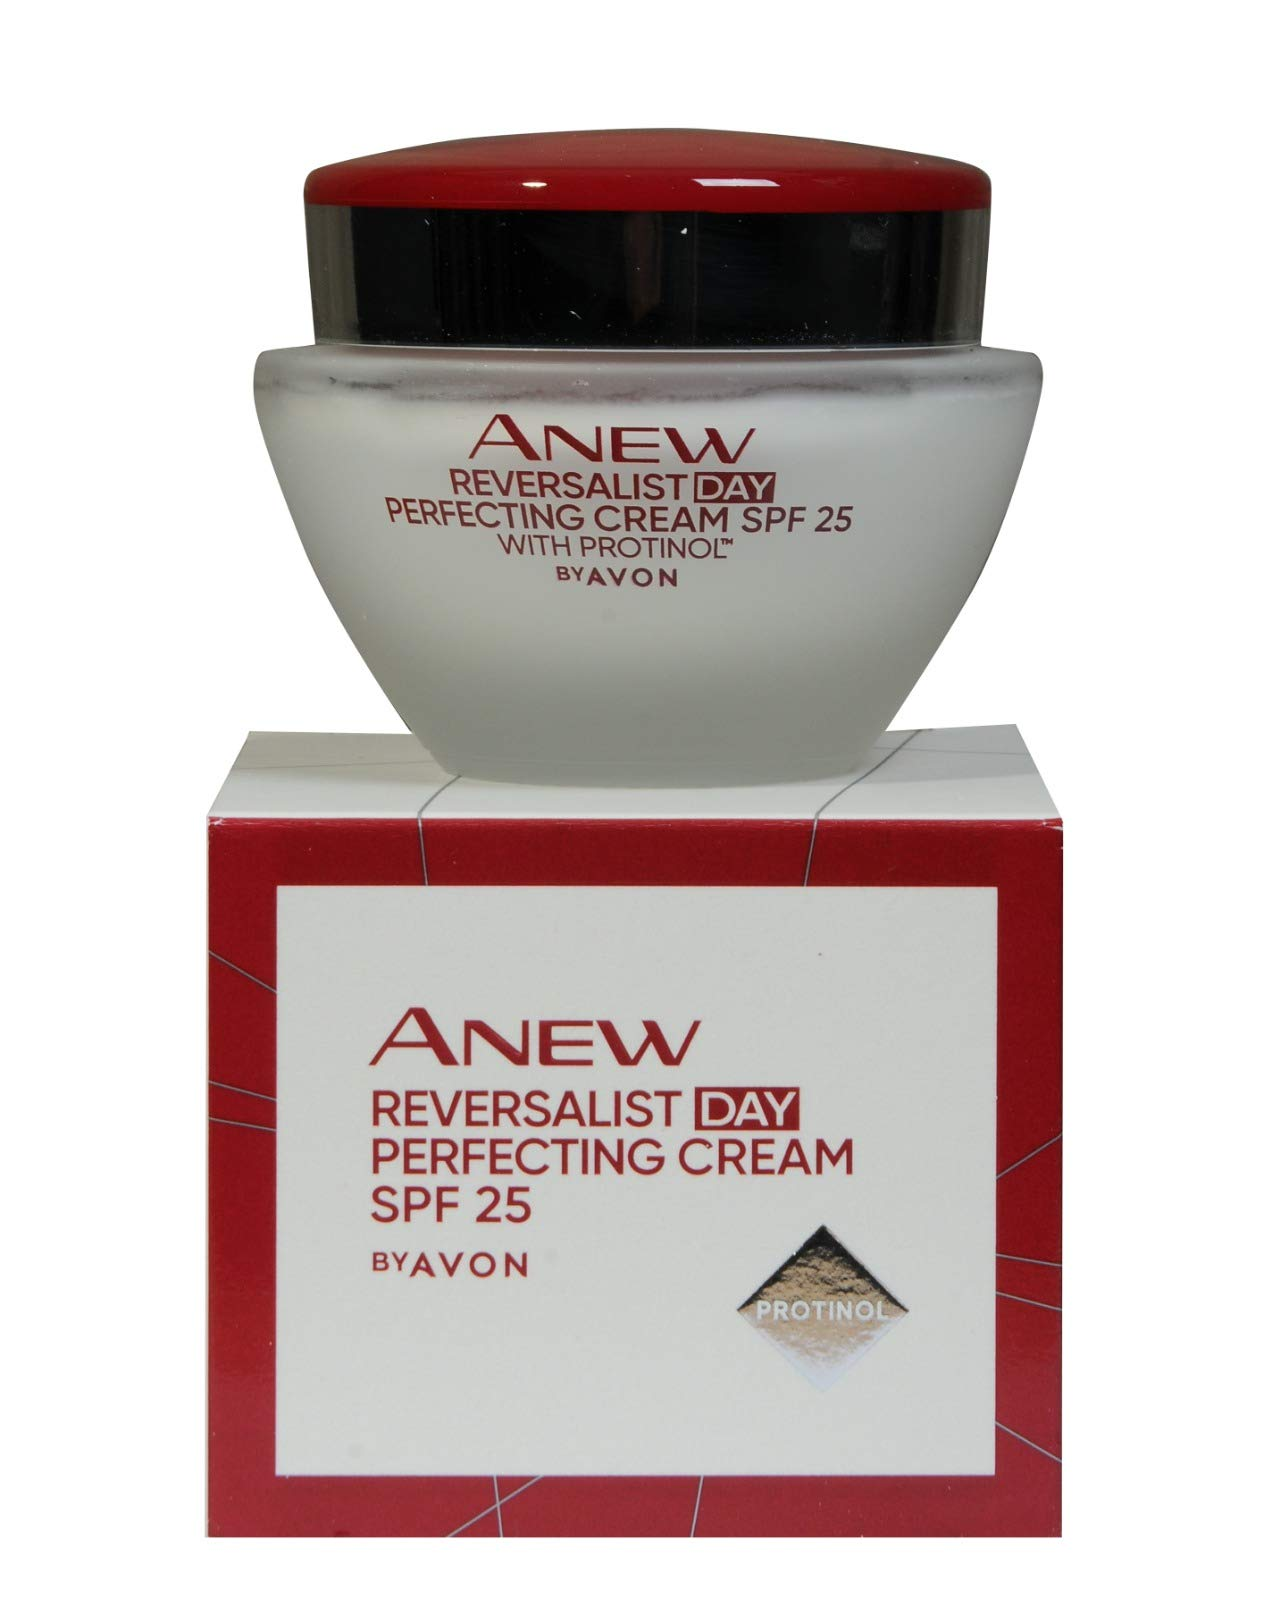 Avon Reversalist Day Renewal Cream SPF 25 1.7oz./50g